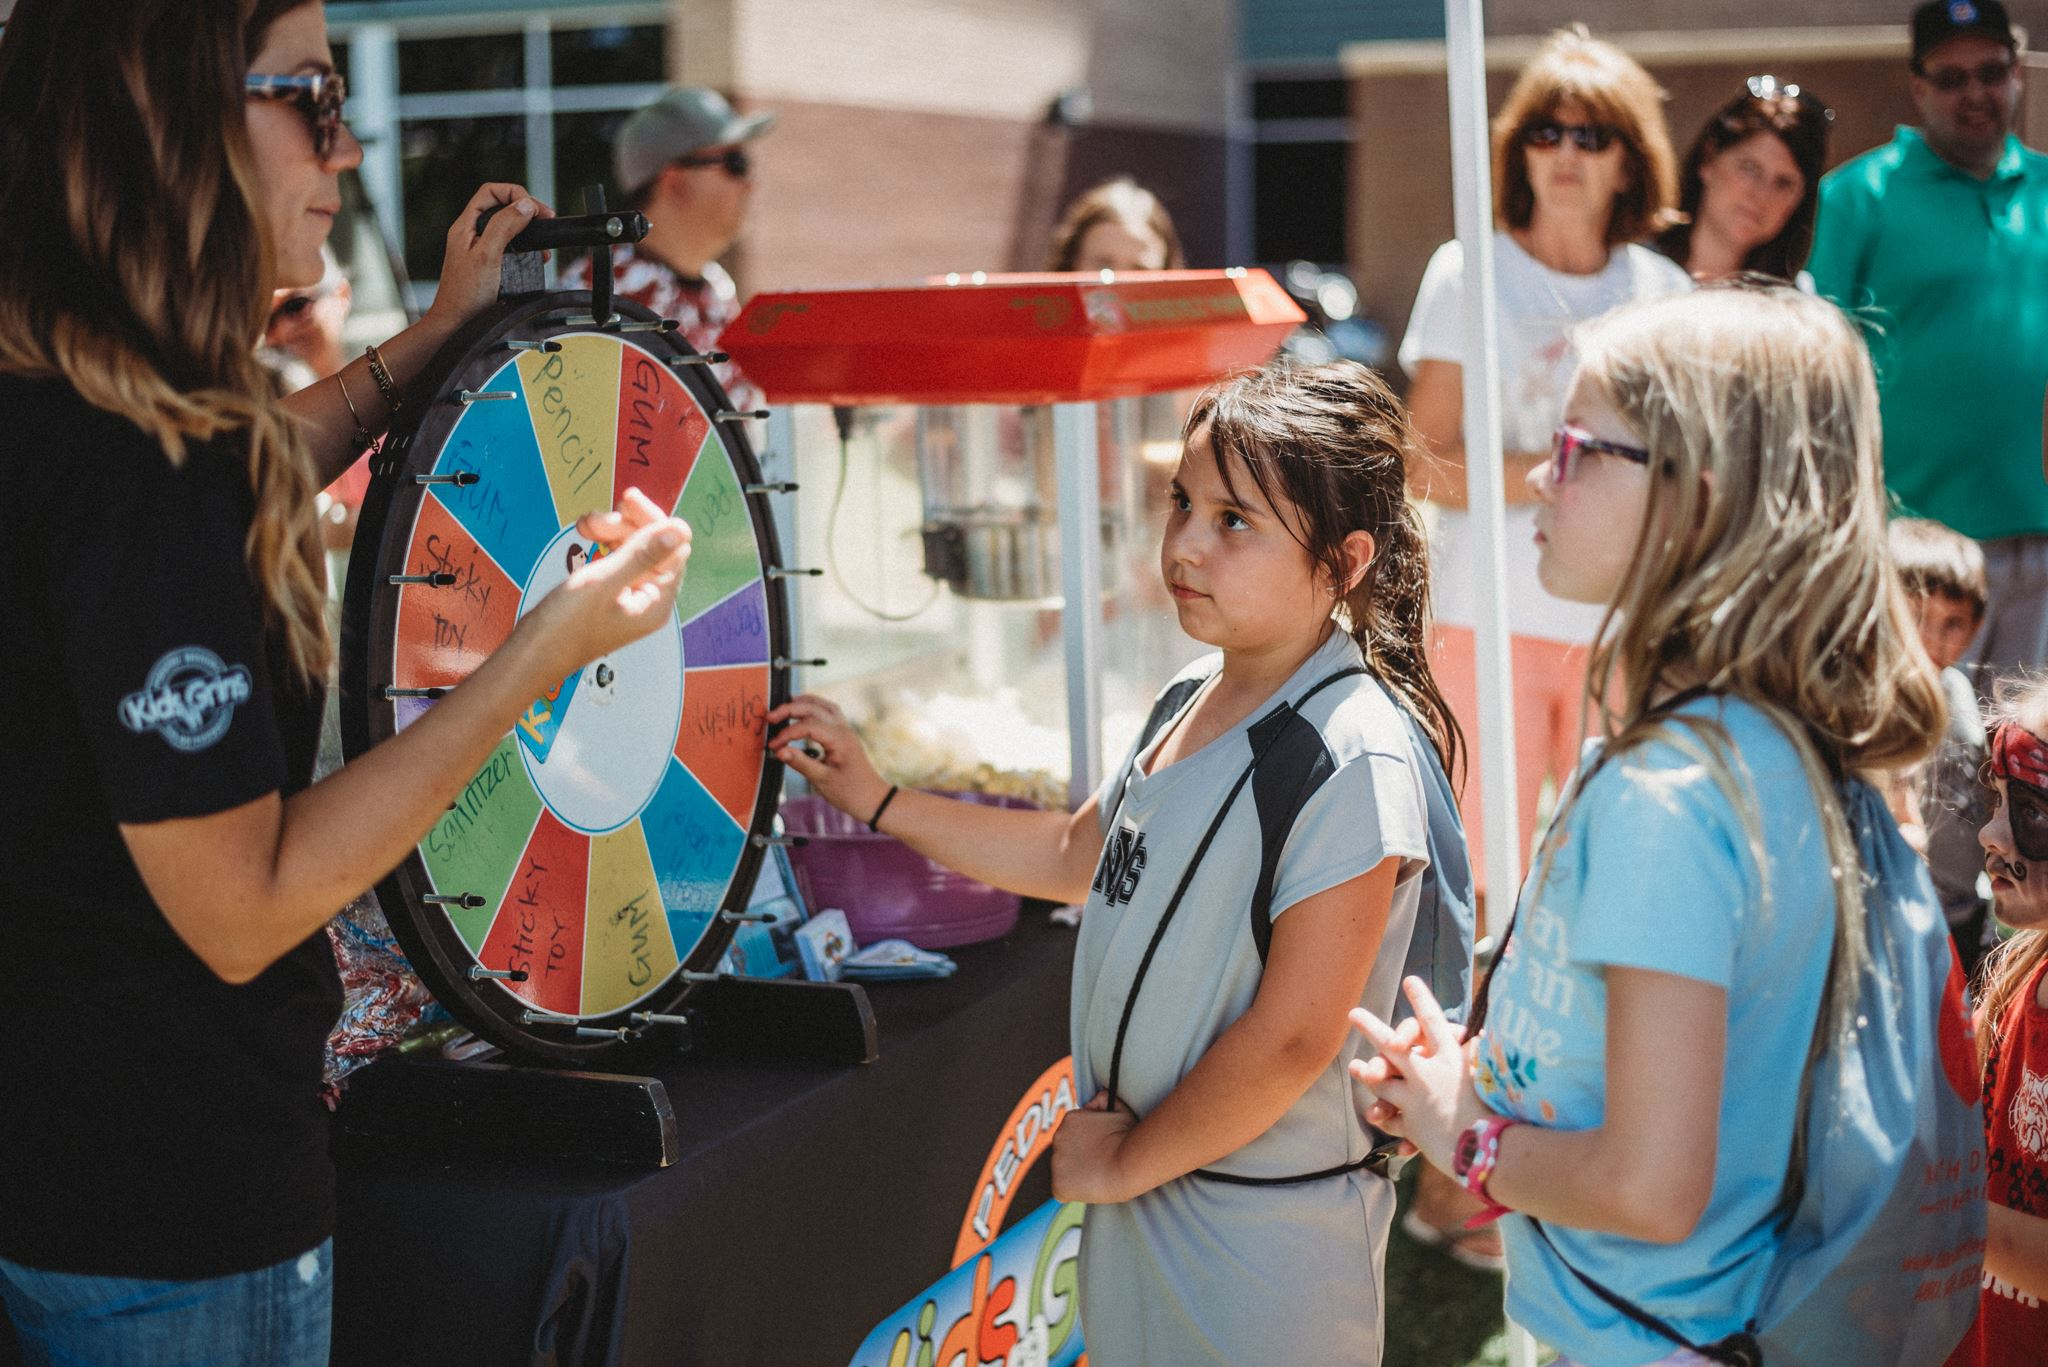 Children Talking to a Woman with a Prize Wheel